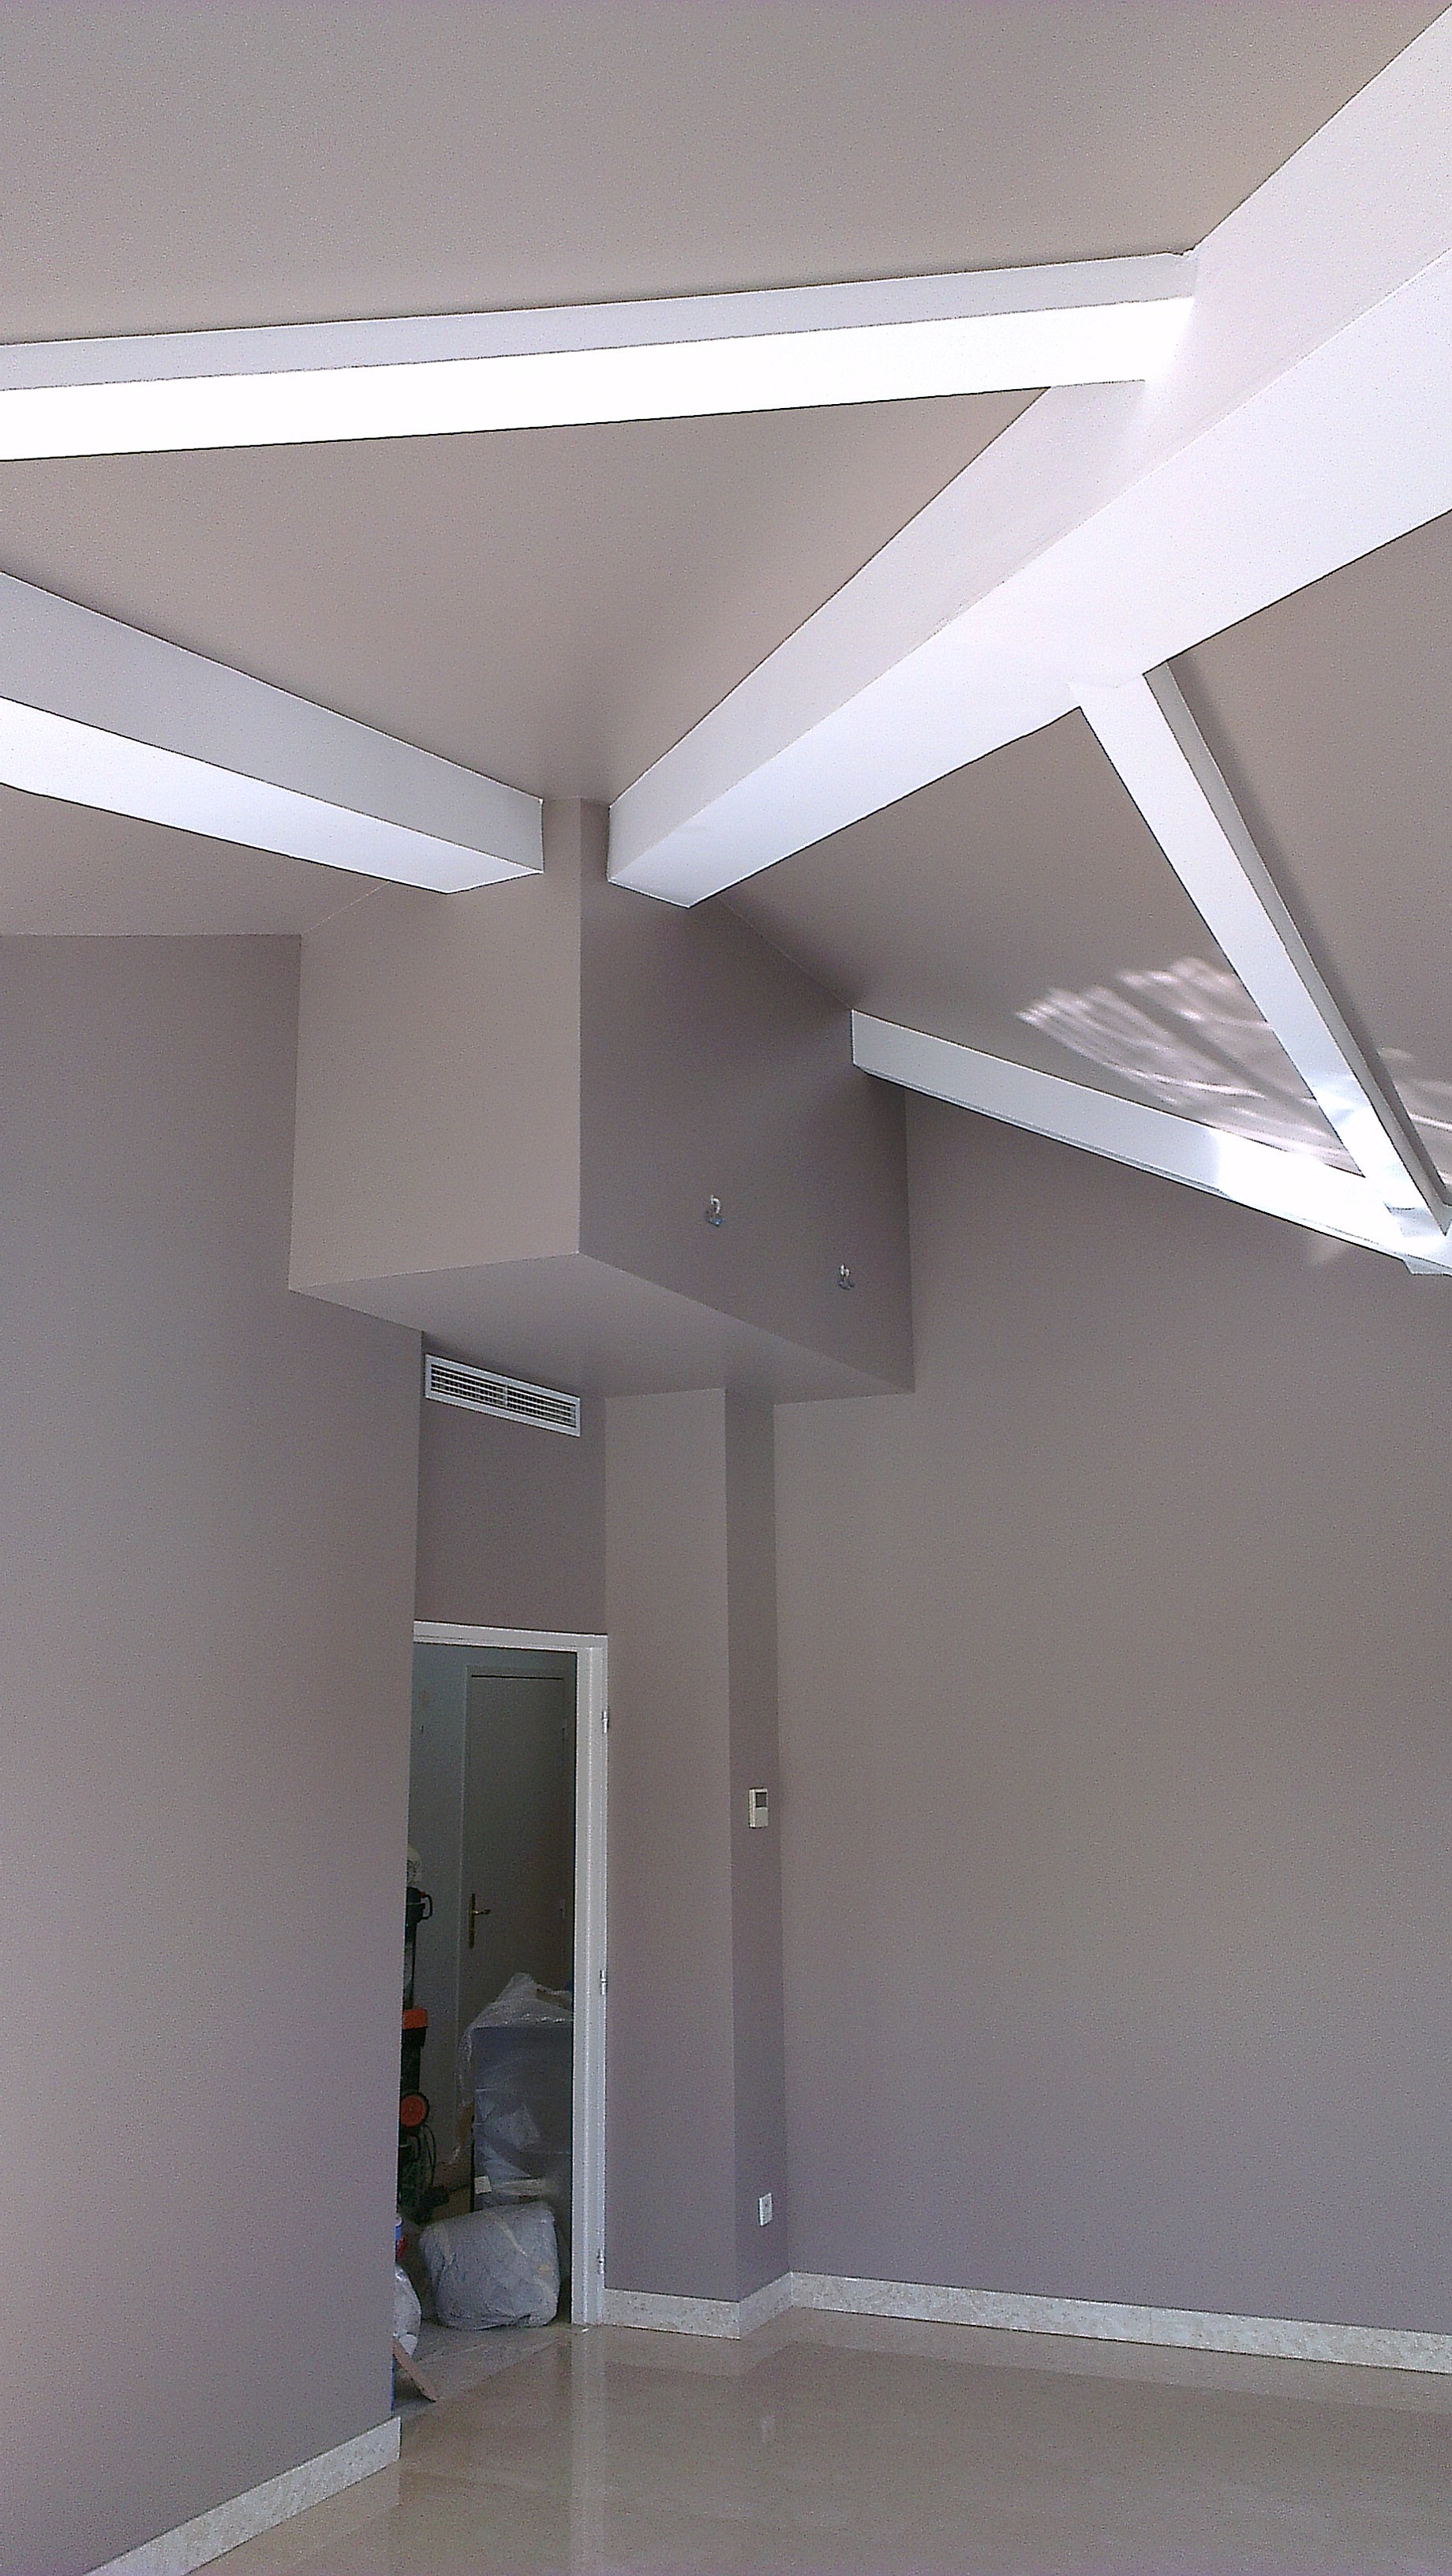 Farbe taupe ral ihr traumhaus ideen for Ral peinture taupe lille